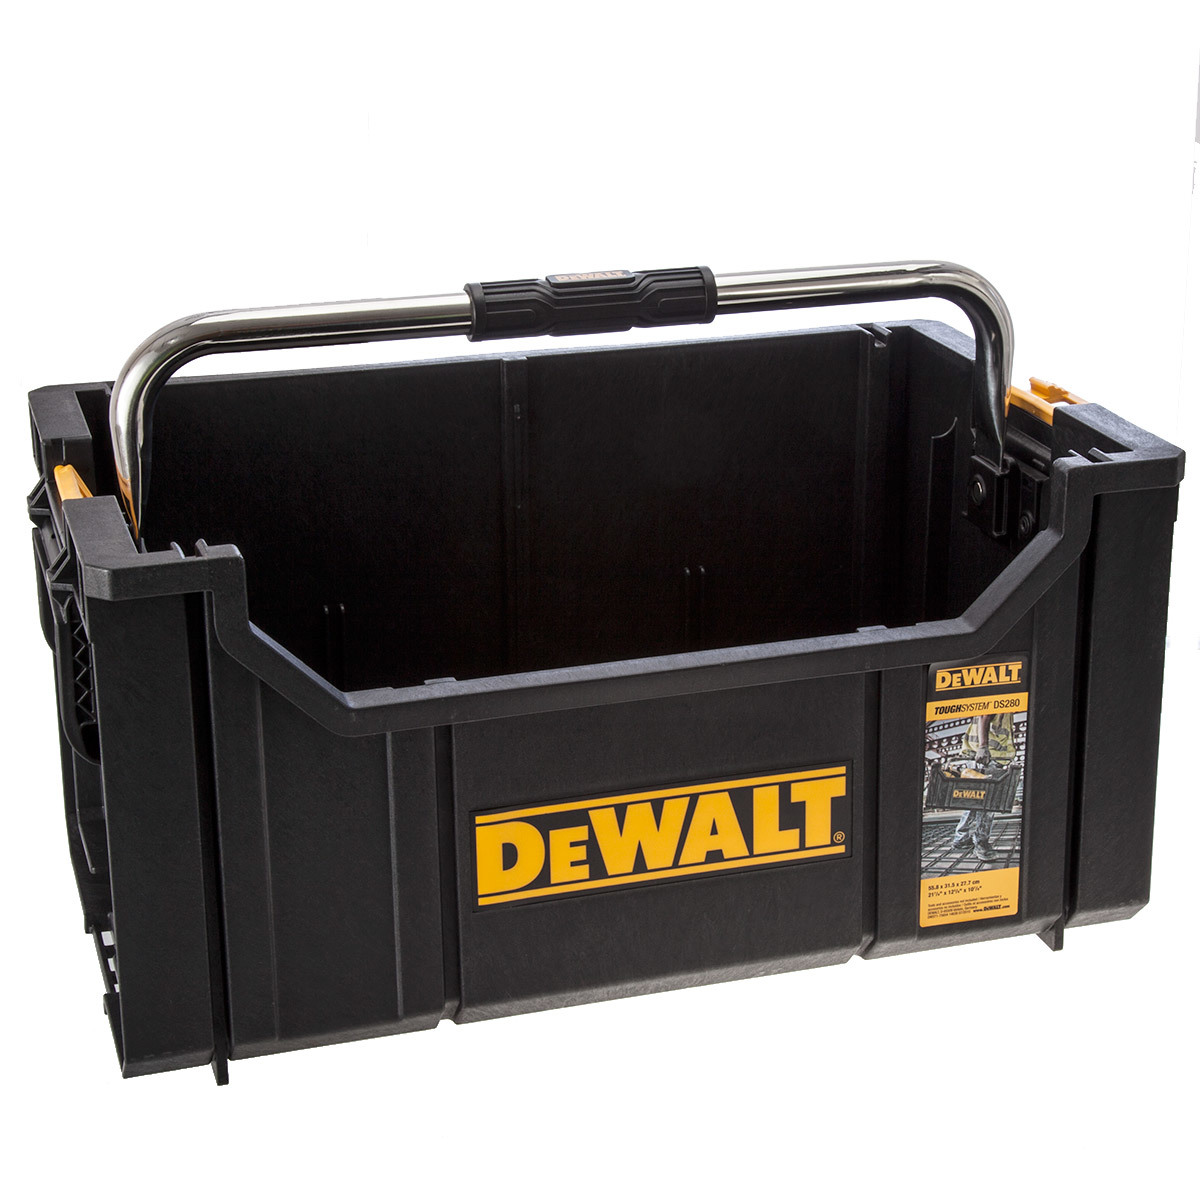 Ящик-модуль открытый TOUGH SYSTEM DeWalt DWST1-75654